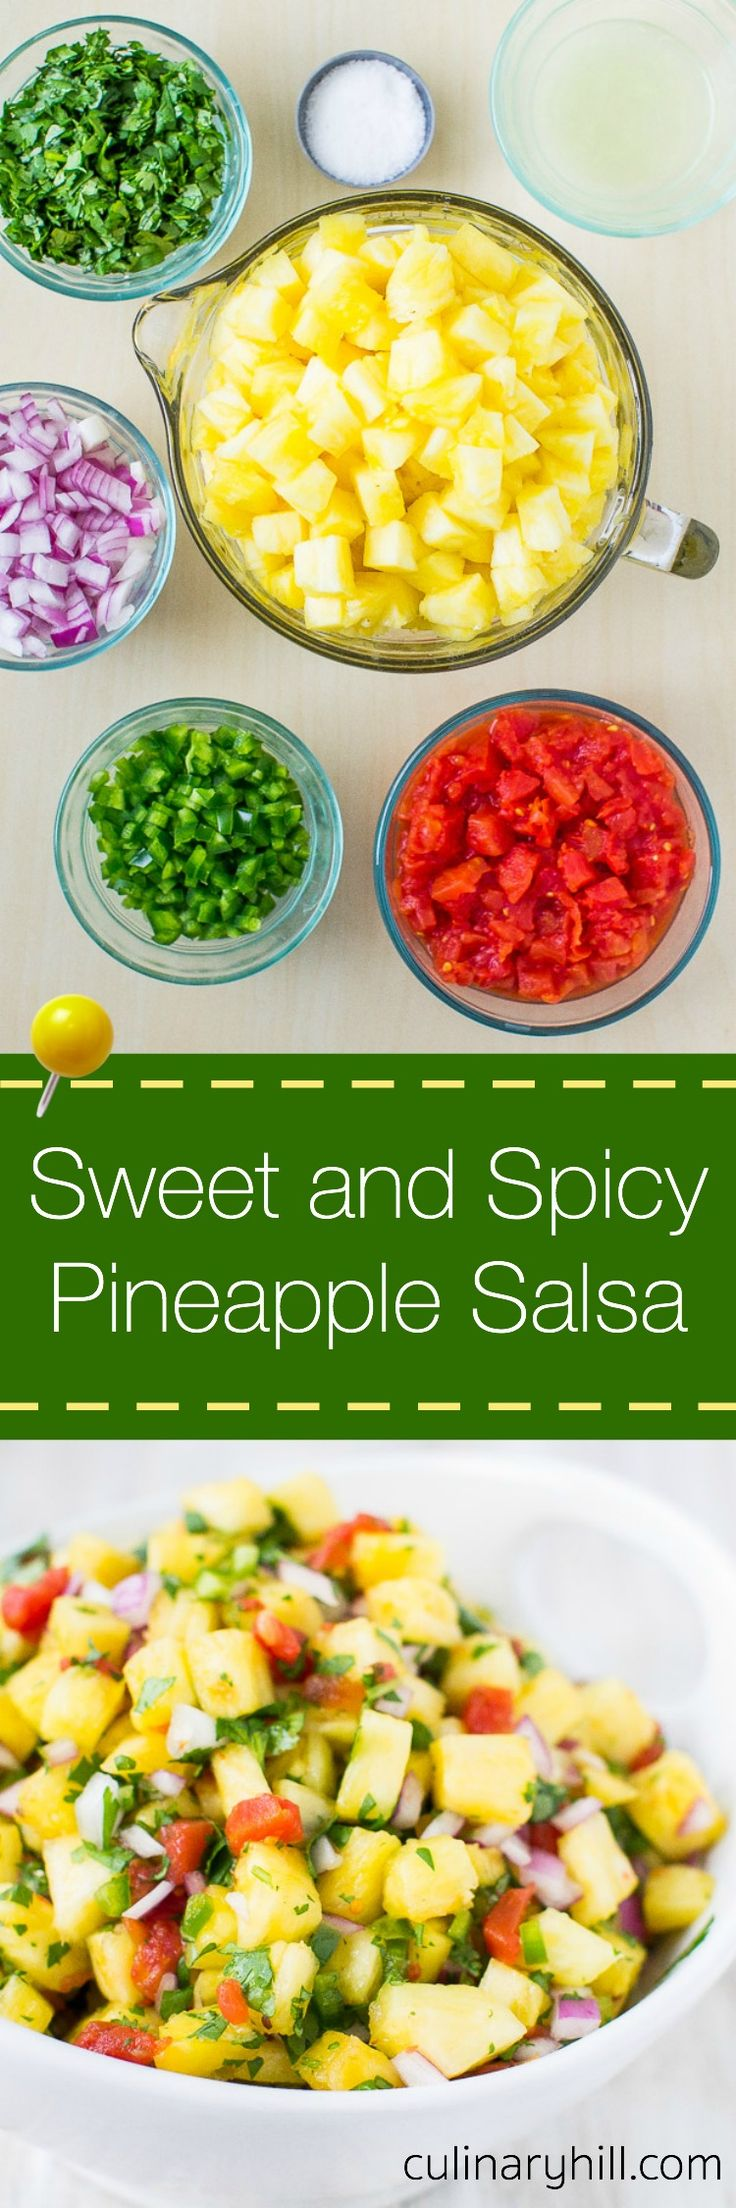 Sweet and Spicy Pineapple Salsa is your answer to summer snacking. It's perfect with chips or your favorite grilled meat while being kind to your waistline! #ad #HuntsFreshTwists